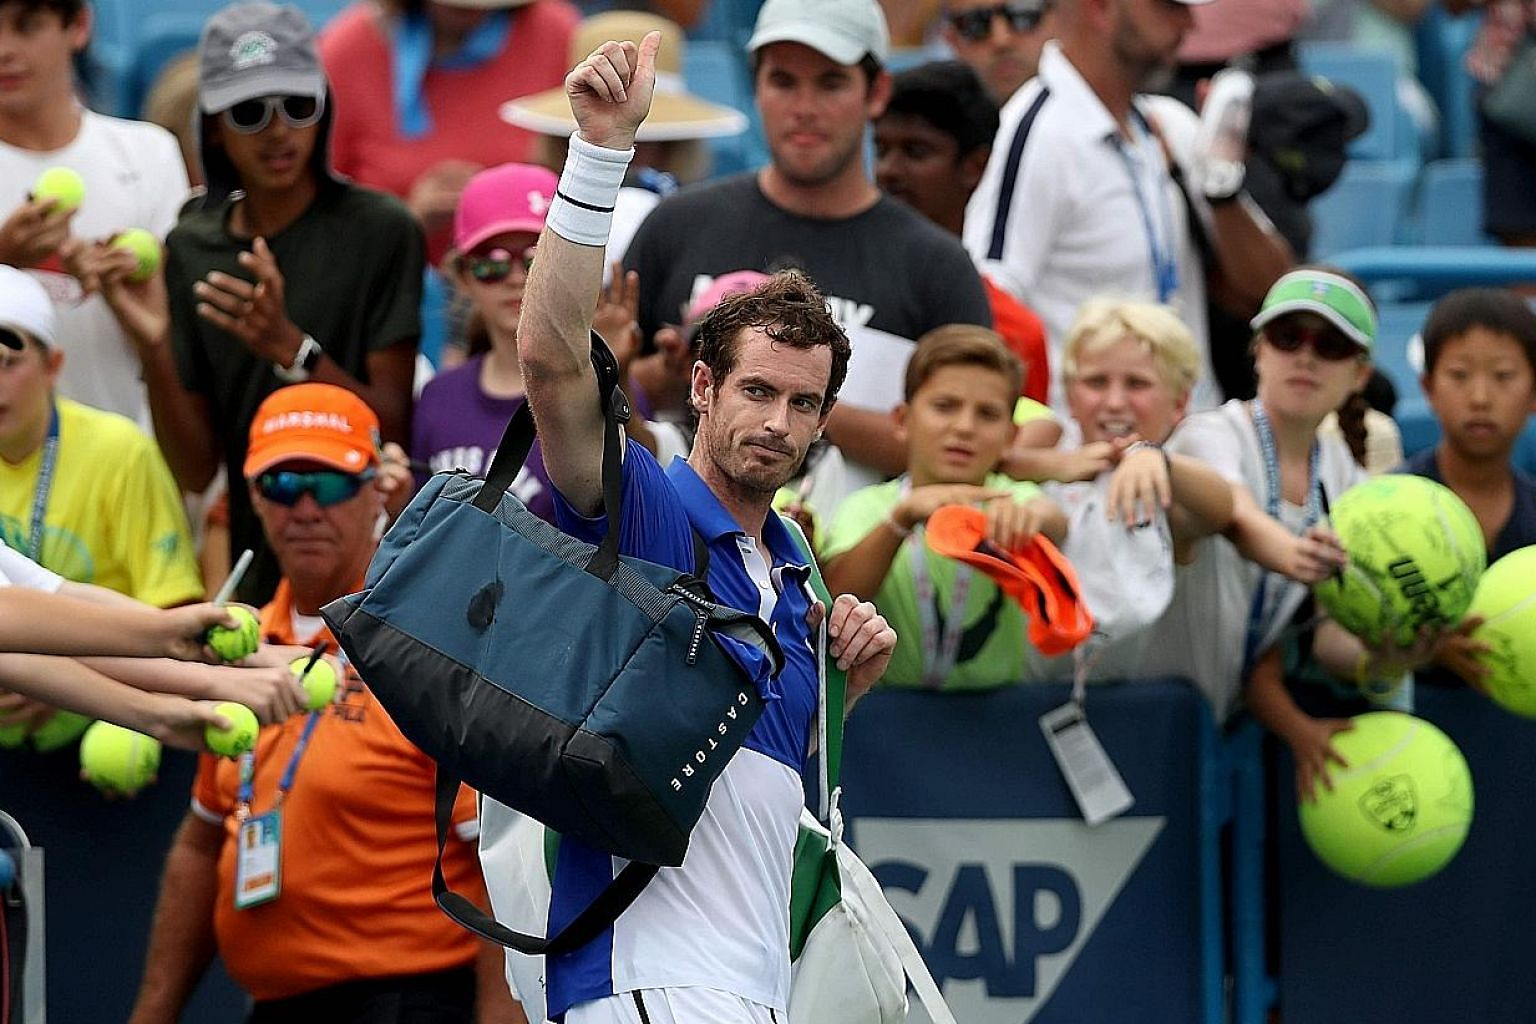 Andy Murray has ruled himself out of the US Open singles after a first-round loss to Richard Gasquet in Cincinnati.